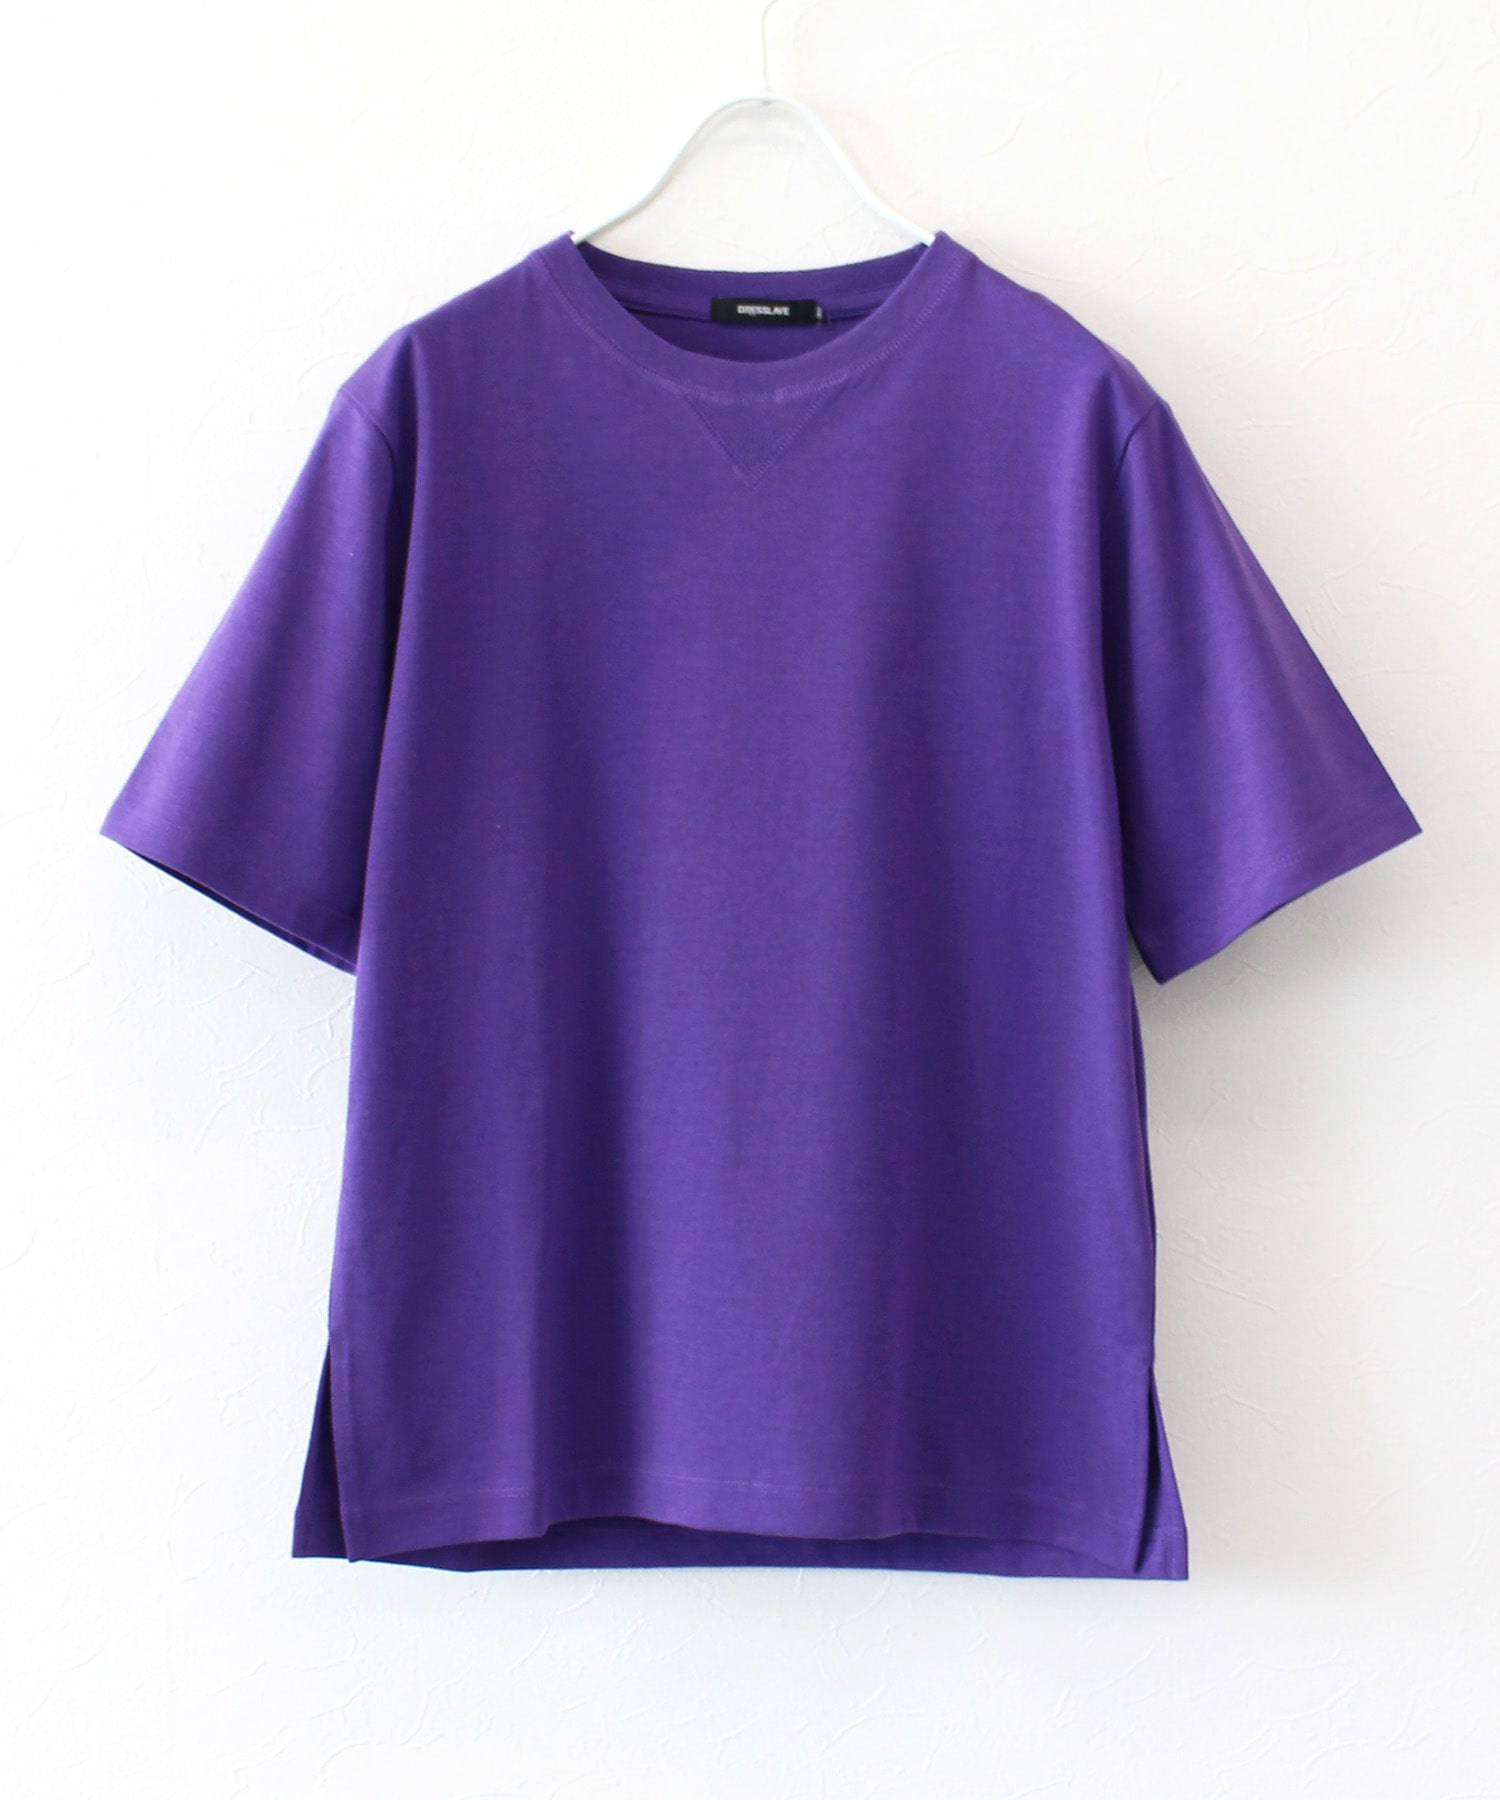 crispy cotton t-shirt